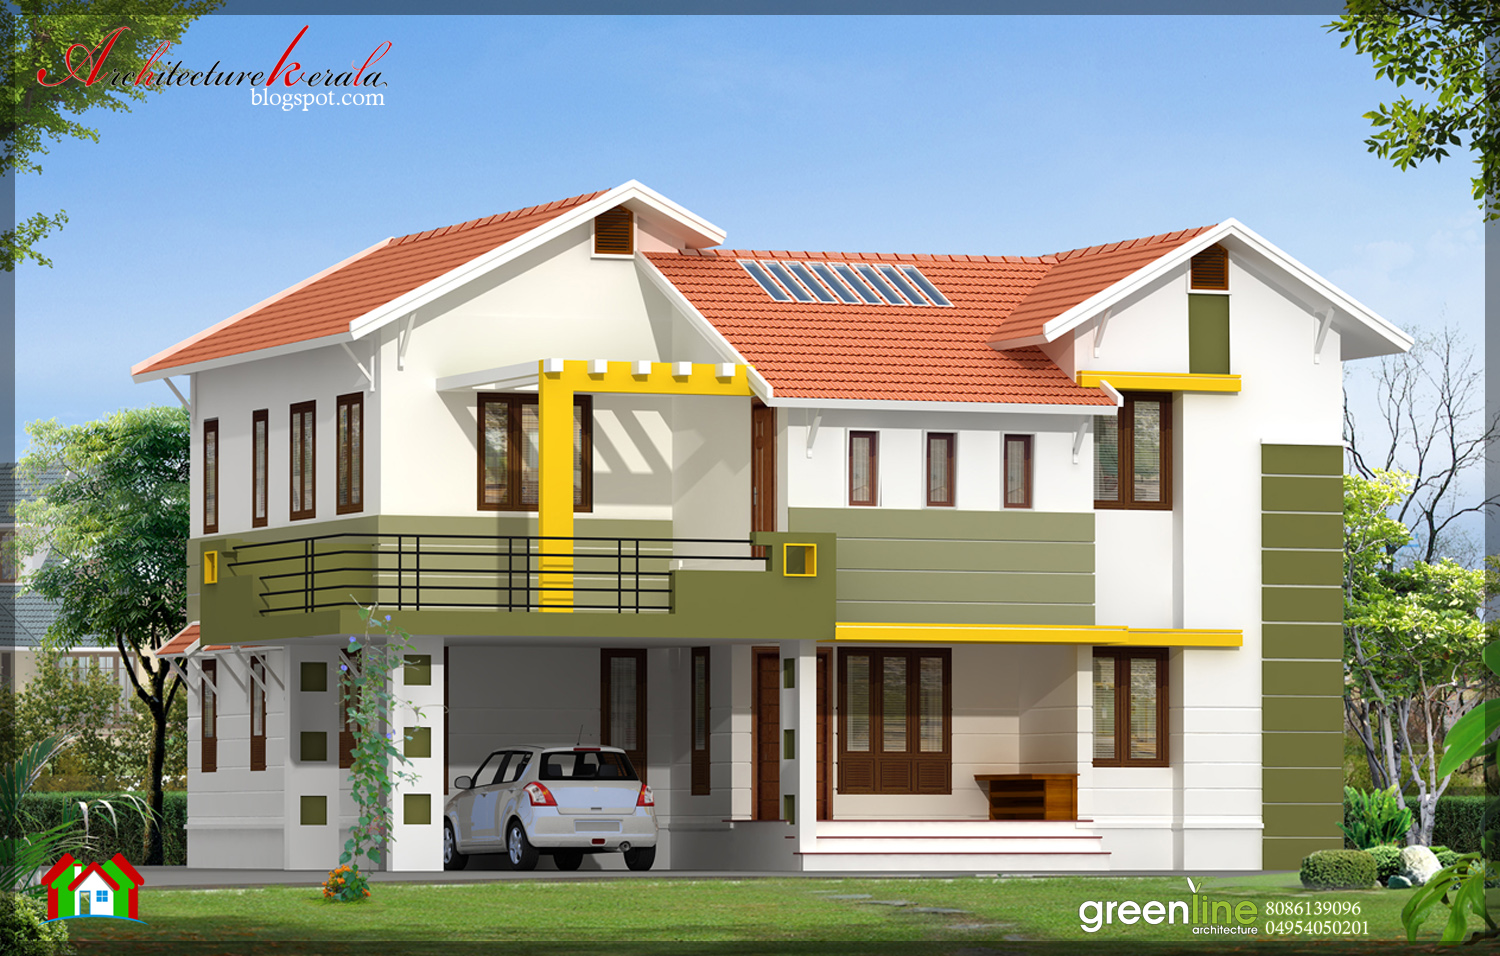 Architecture kerala 4 bhk contemporary style indian home for Indian house design architect